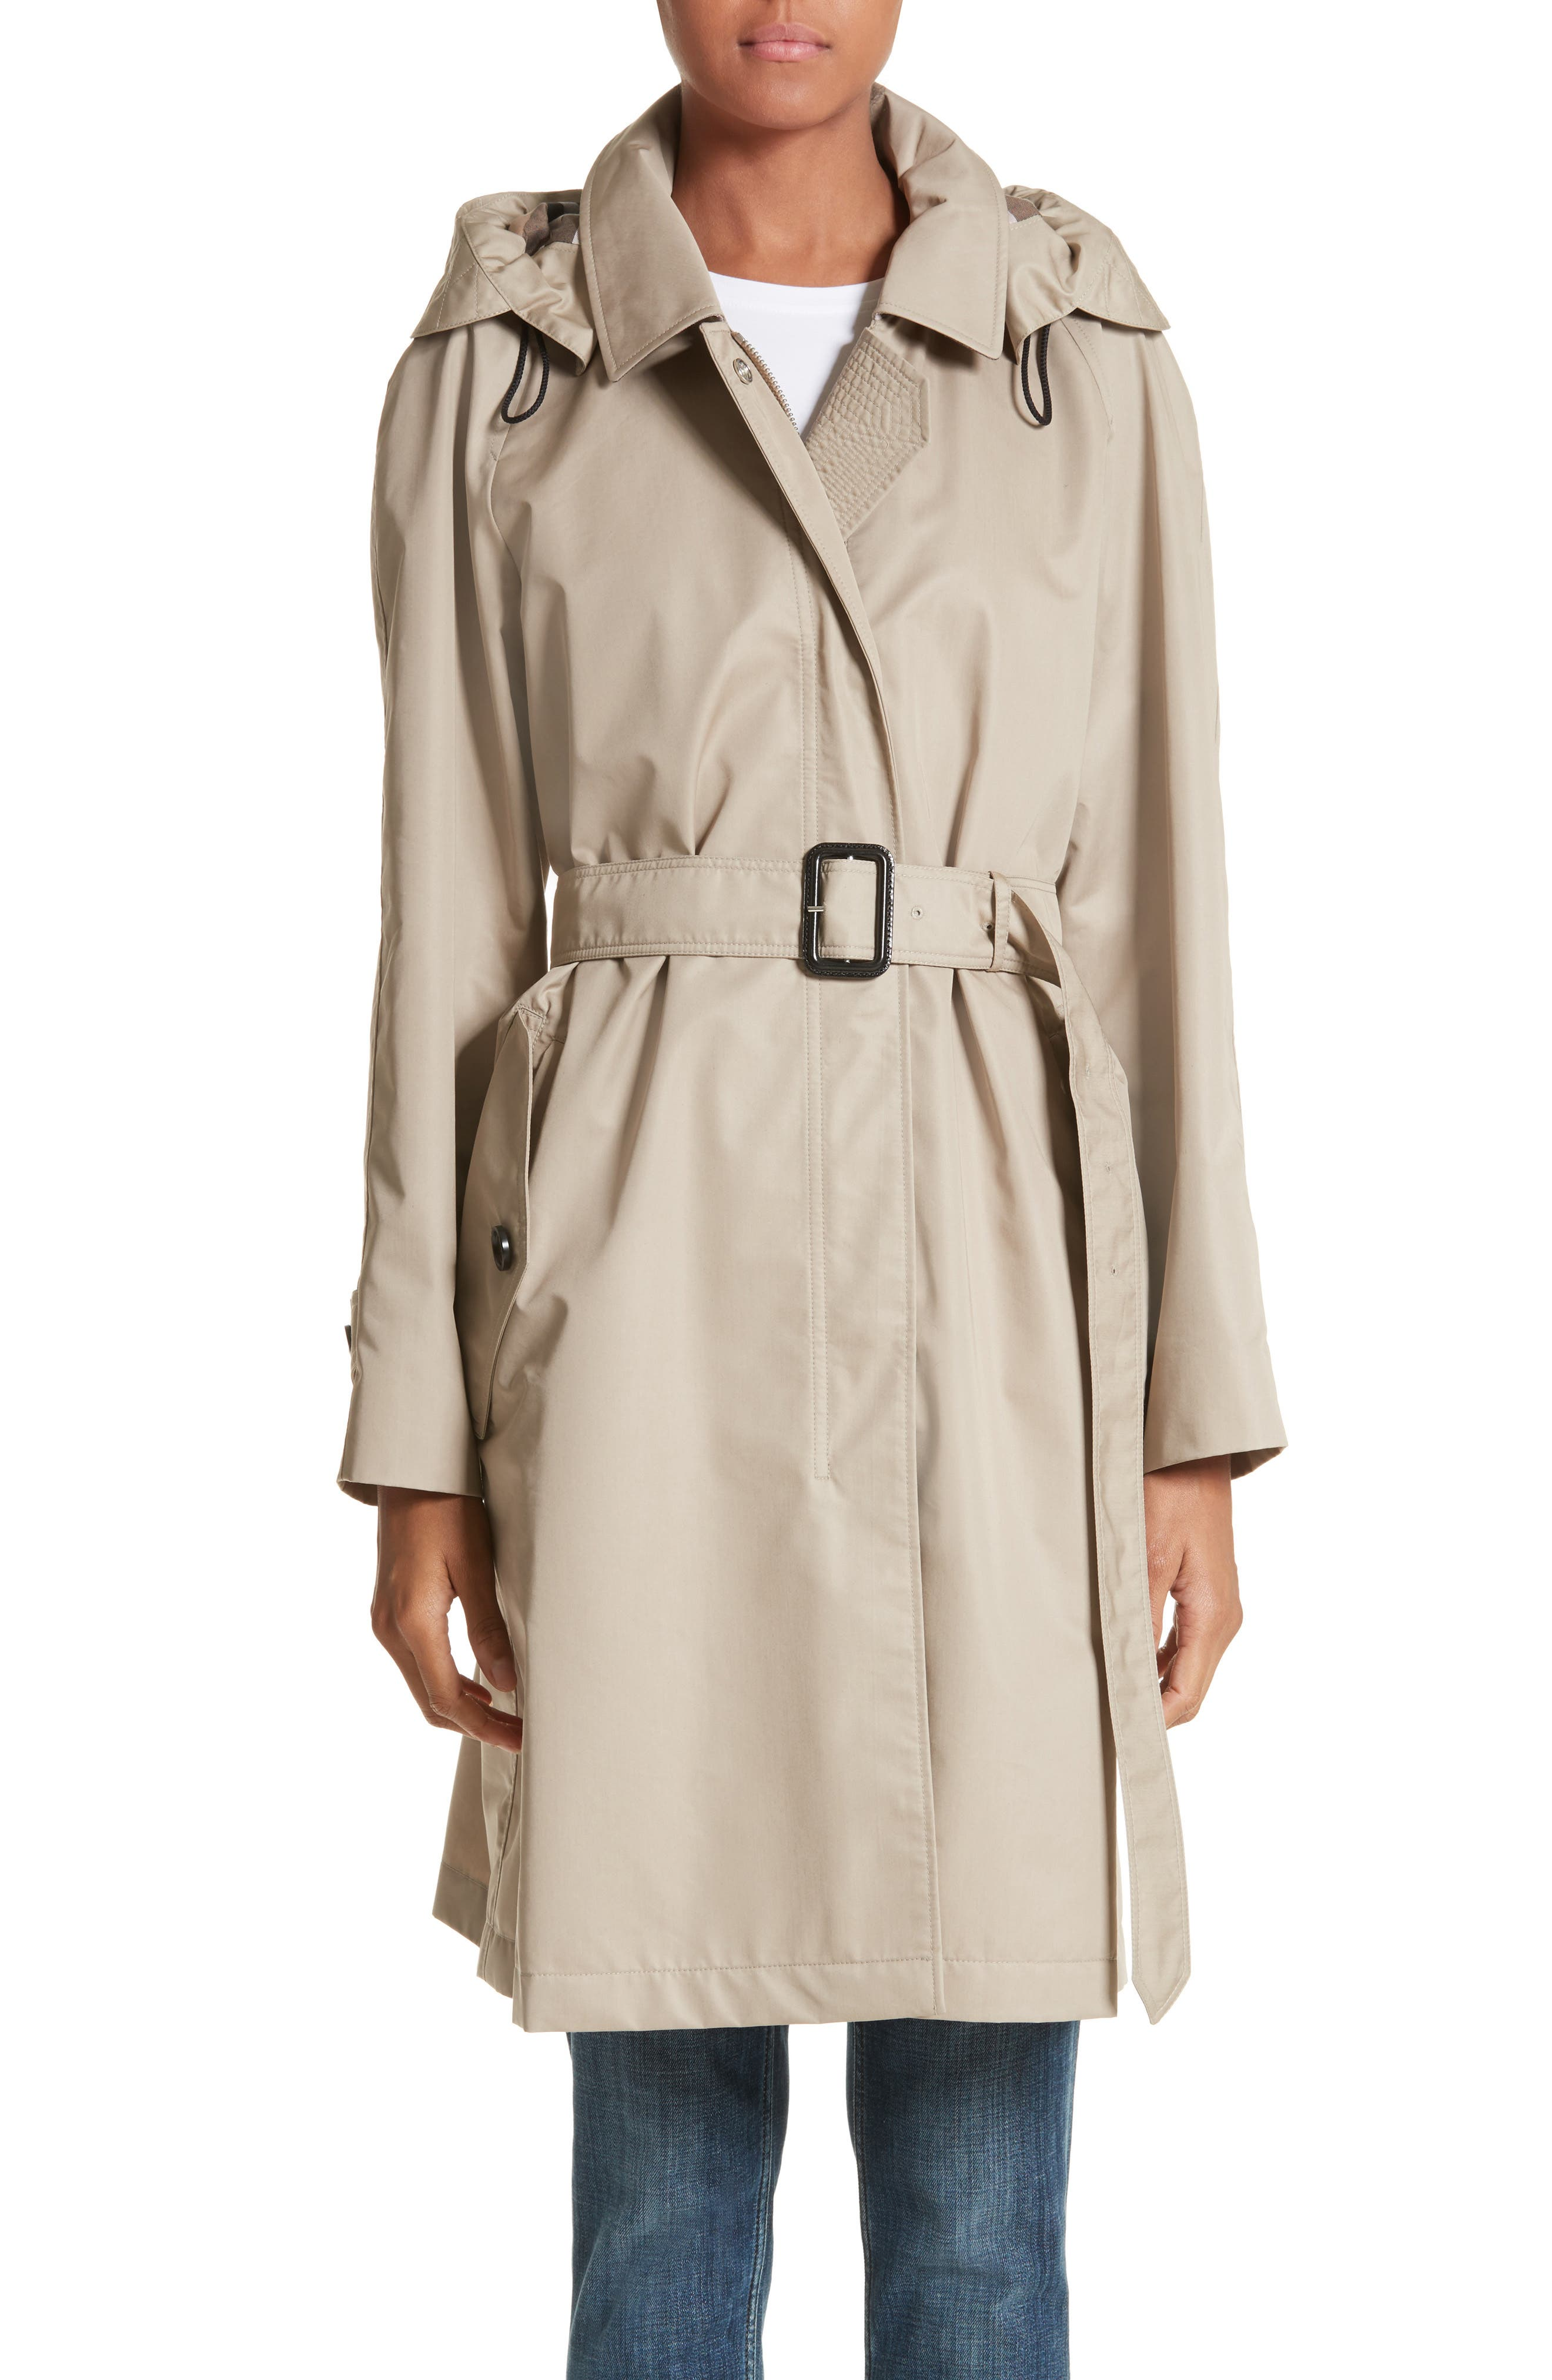 Kibworth Waterproof Car Coat with Removable Hood, Main, color, 250